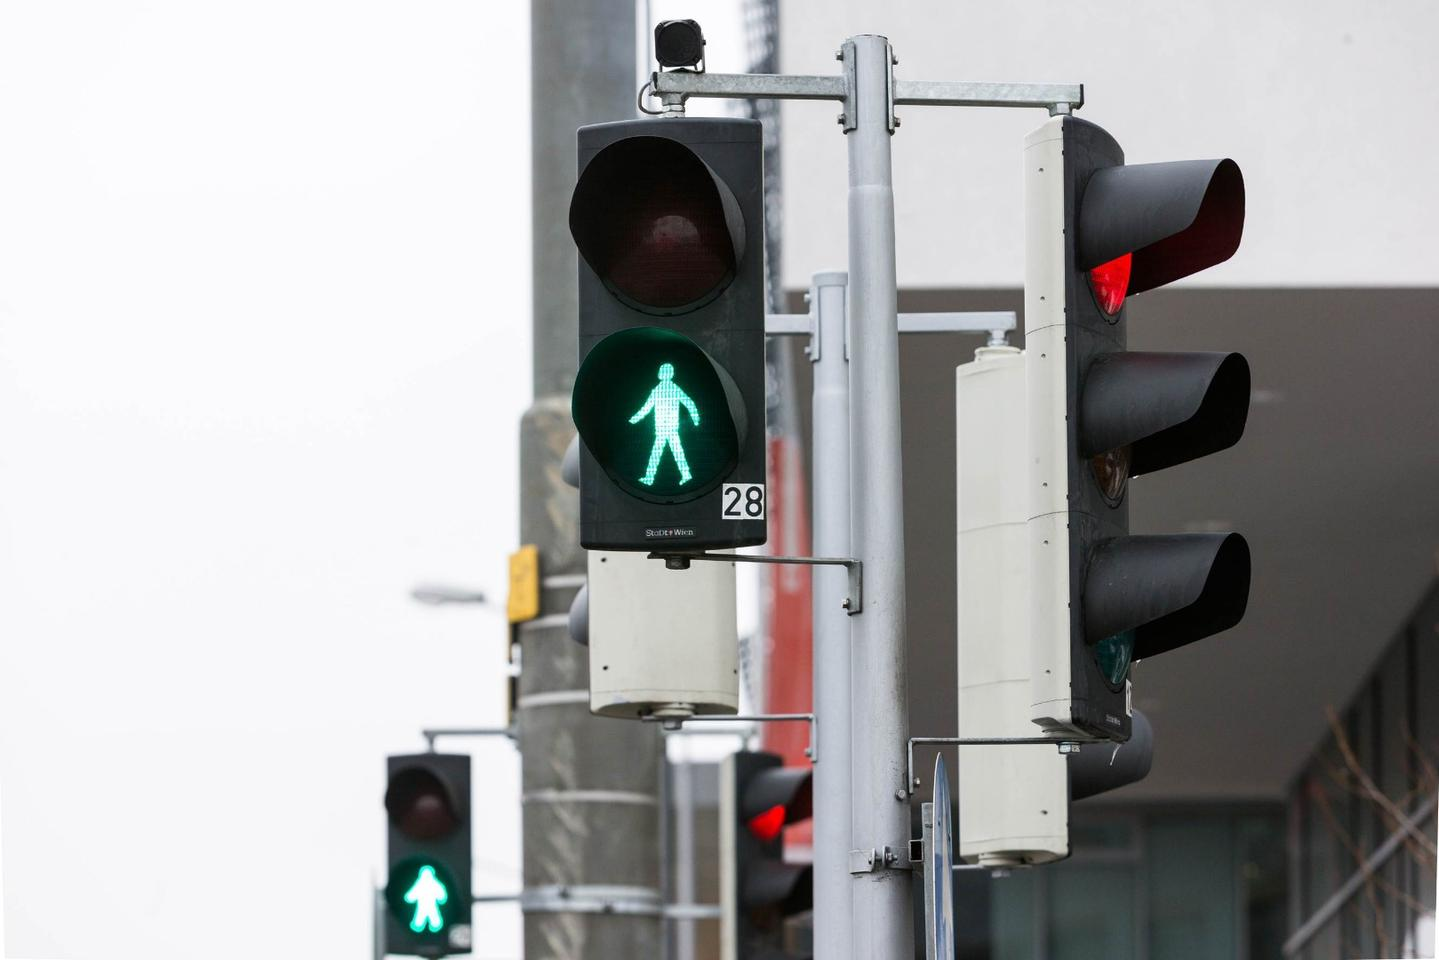 The system incorporates a camera mounted above the crossing light